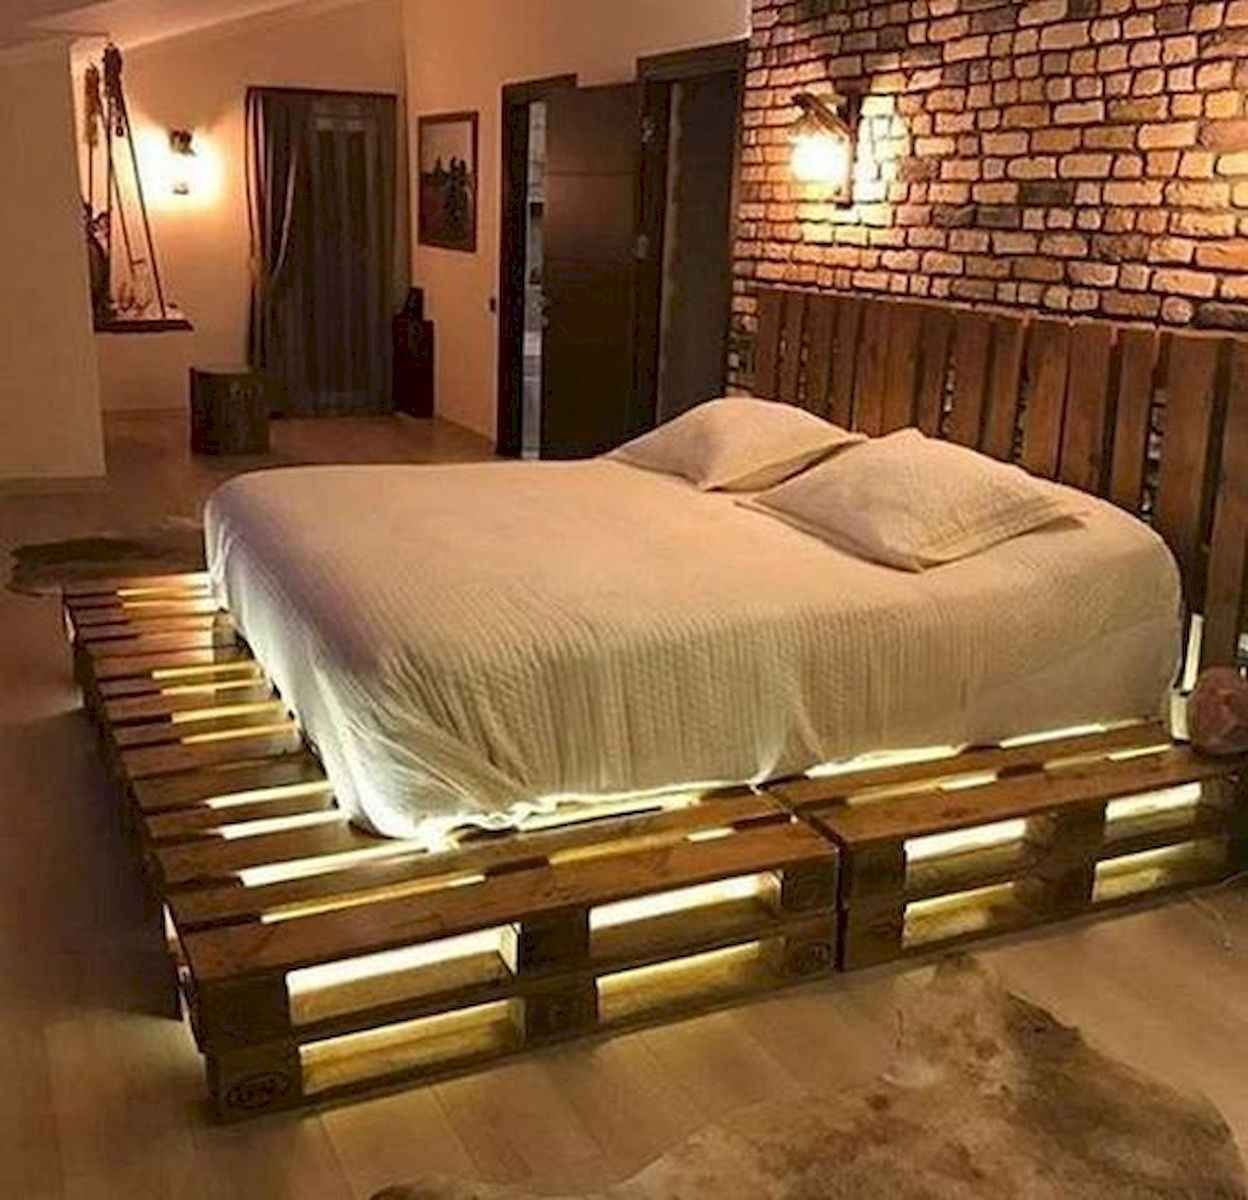 50 Creative Recycled DIY Projects Pallet Beds Design Ideas ... on Pallet Bedroom Design  id=79161